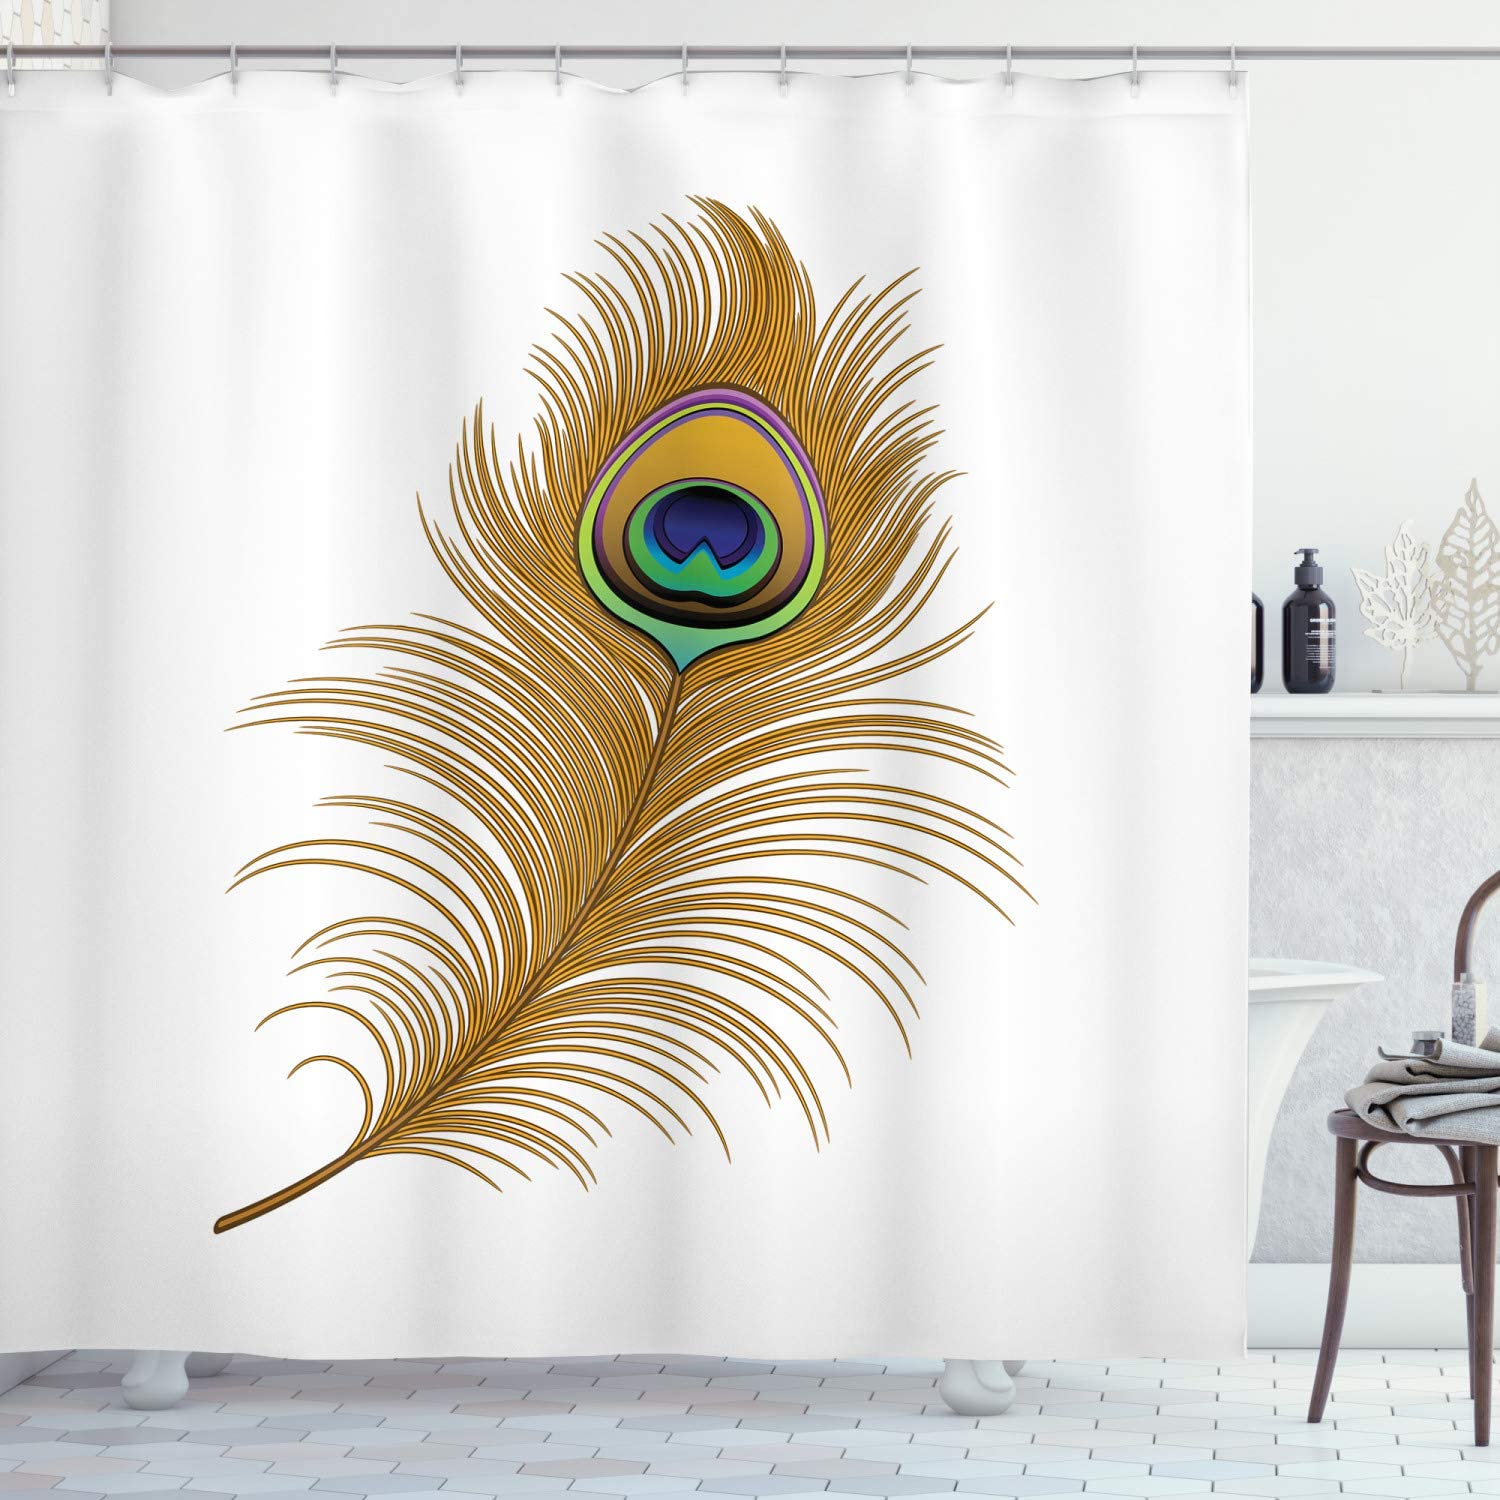 Amazon Com Ambesonne Peacock Shower Curtain Exotic Alluring Bird With Feathers Wildlife Nature Image Print Cloth Fabric Bathroom Decor Set With Hooks 84 Long Extra Mustard Green Navy Home Kitchen